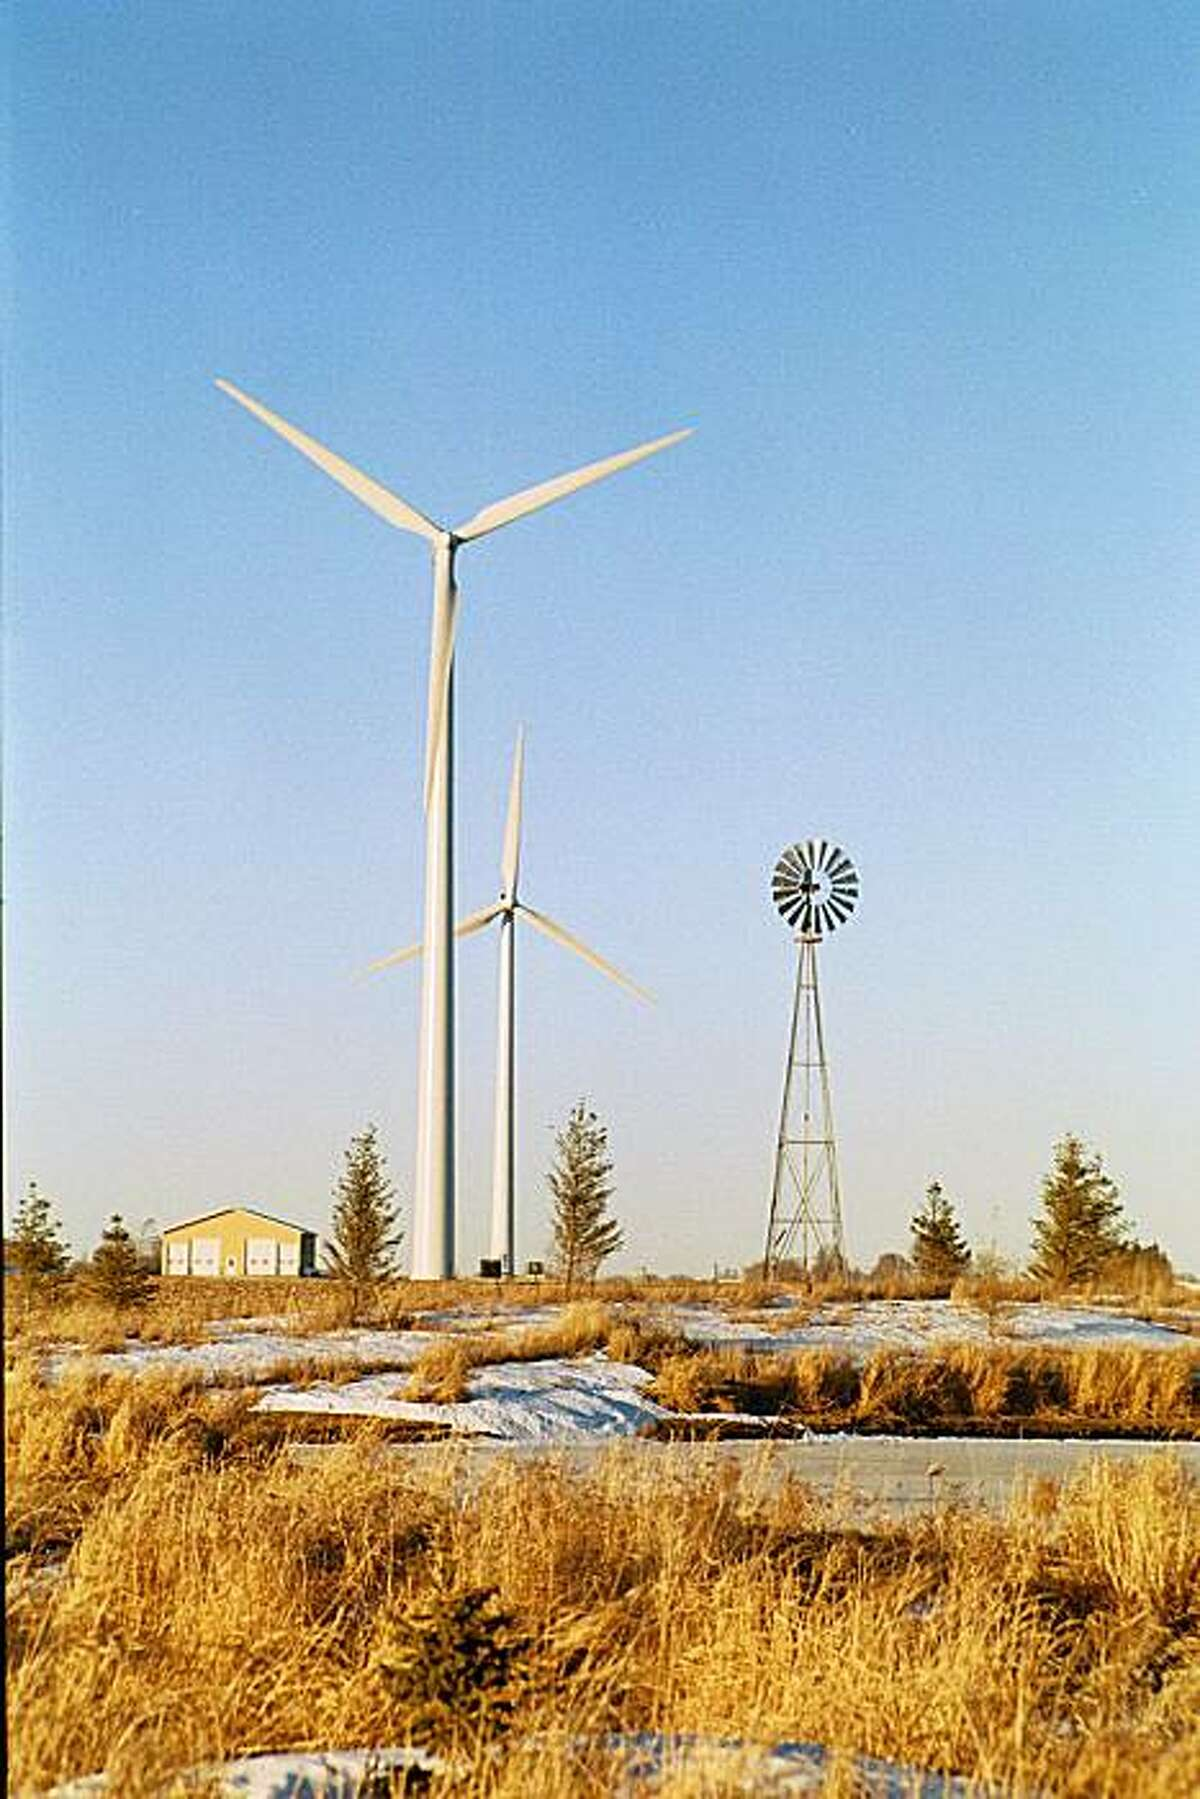 A community wind farm in Minnesota has two large wind turbines sited on agricultural land and an older windmill.